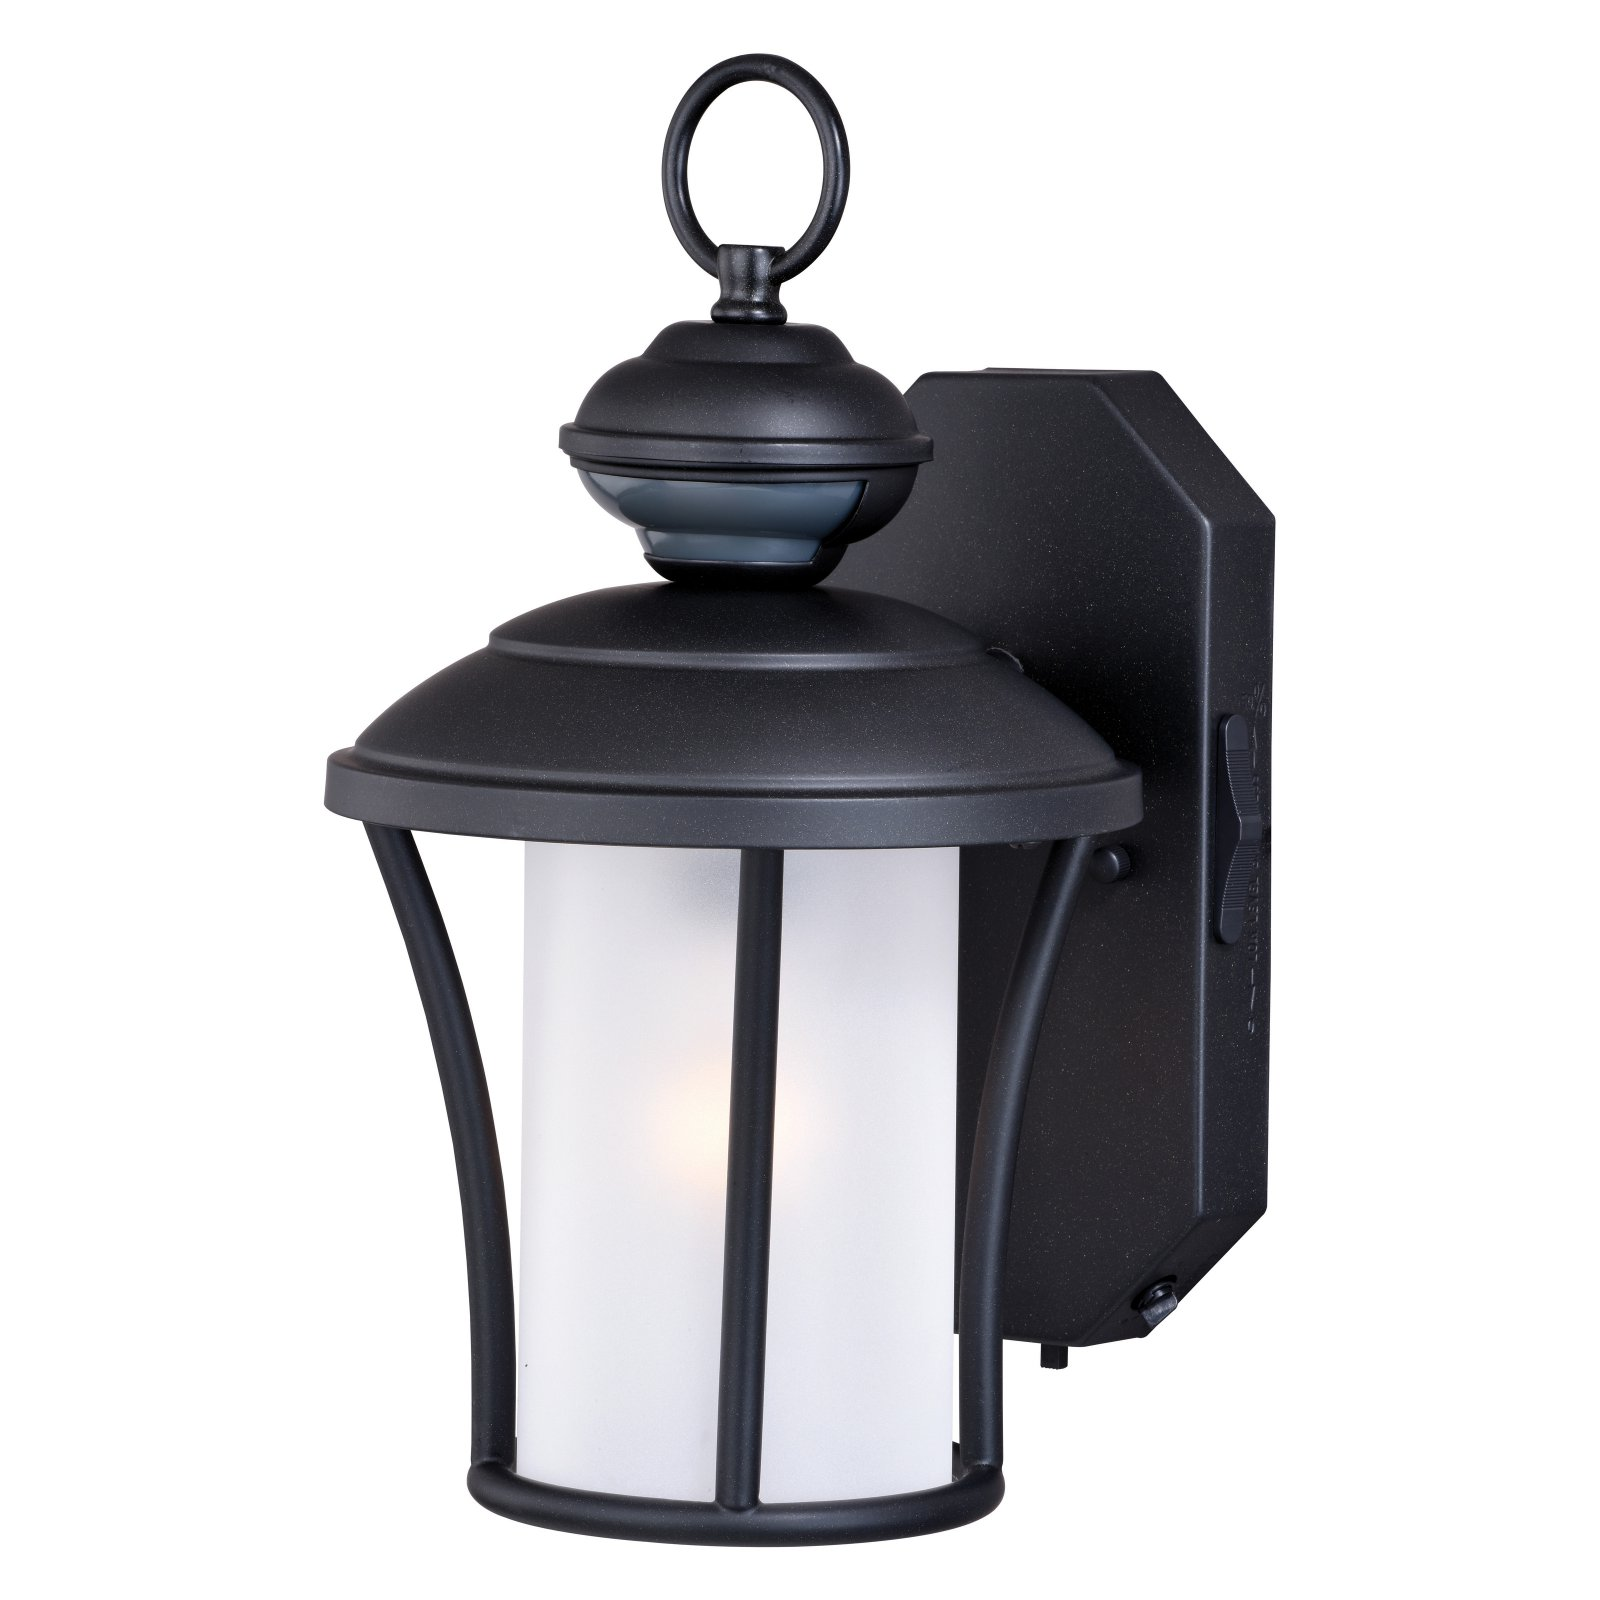 Vaxcel Parker Dualux T0250 Outdoor Wall Light